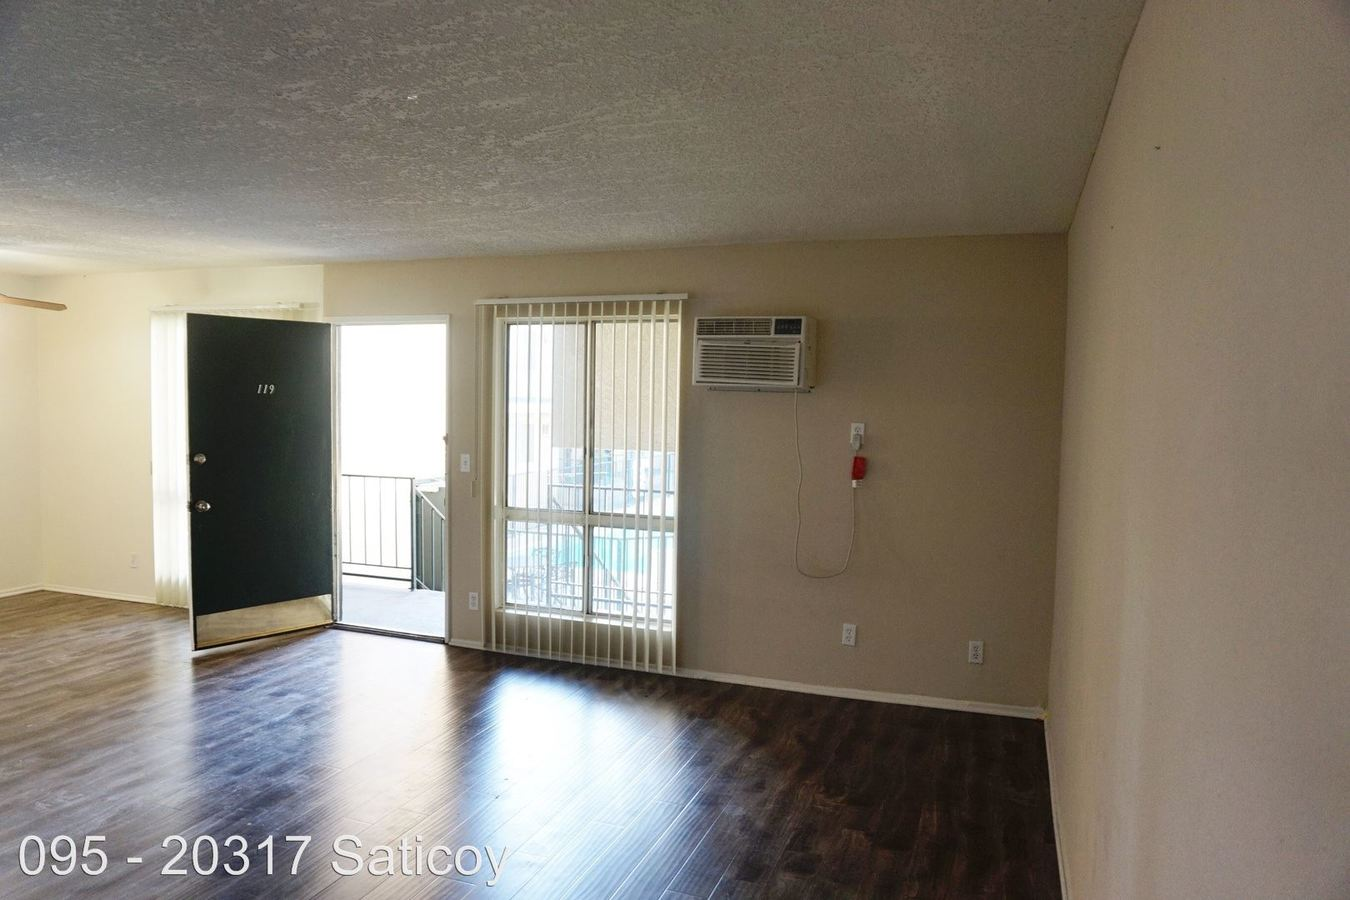 2 Bedrooms 2 Bathrooms Apartment for rent at 20317 Saticoy St. in Winnetka, CA